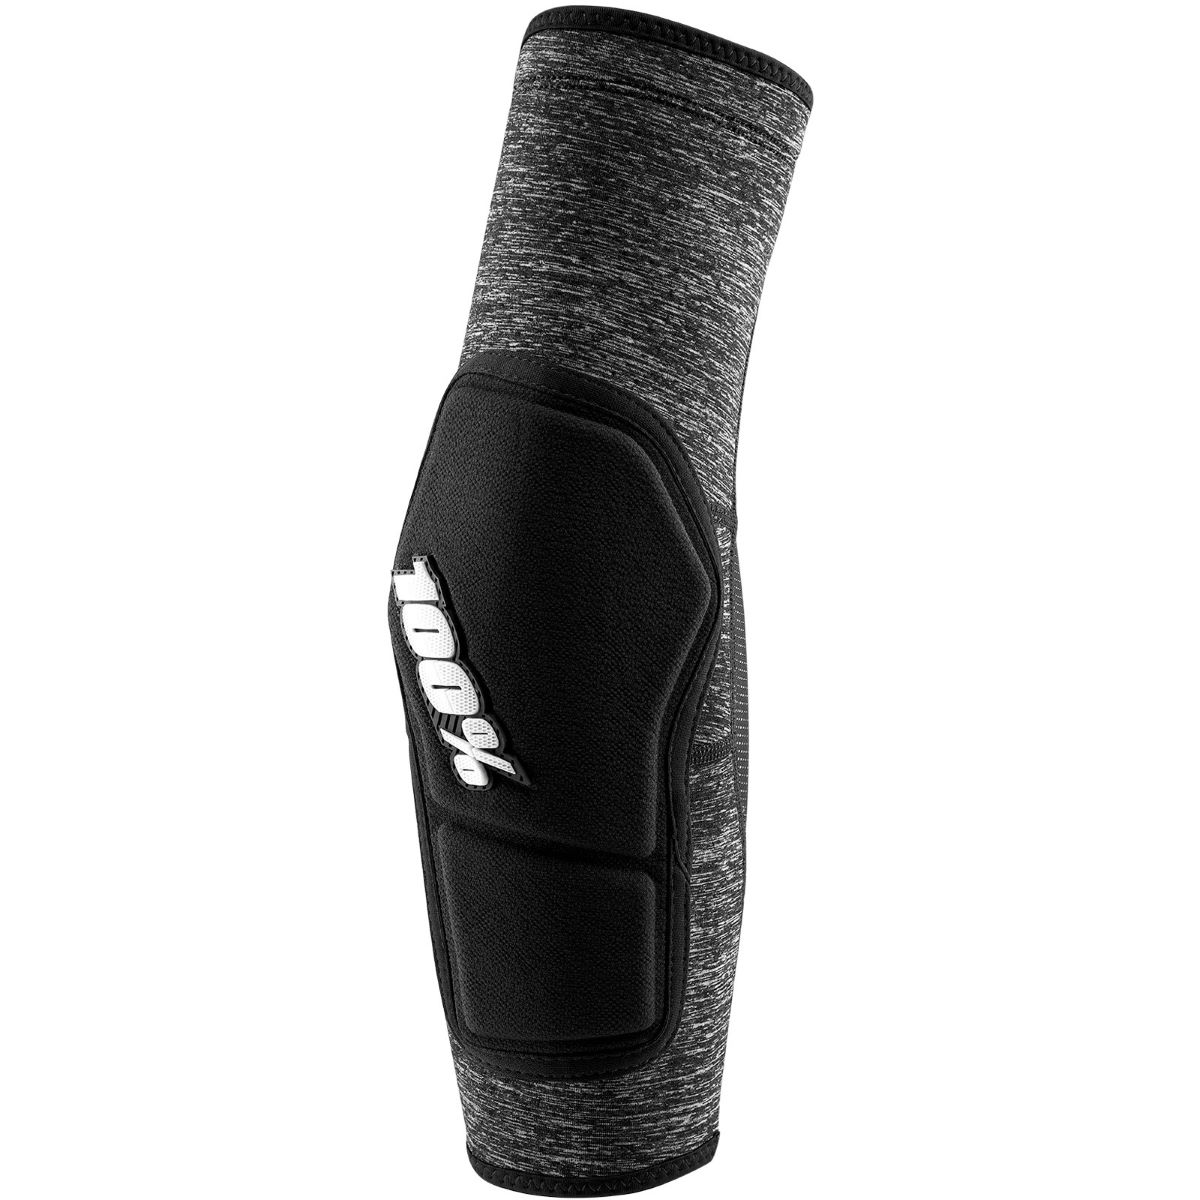 100% Ridecamp Elbow Guard - M Grey/black  Elbow Pads